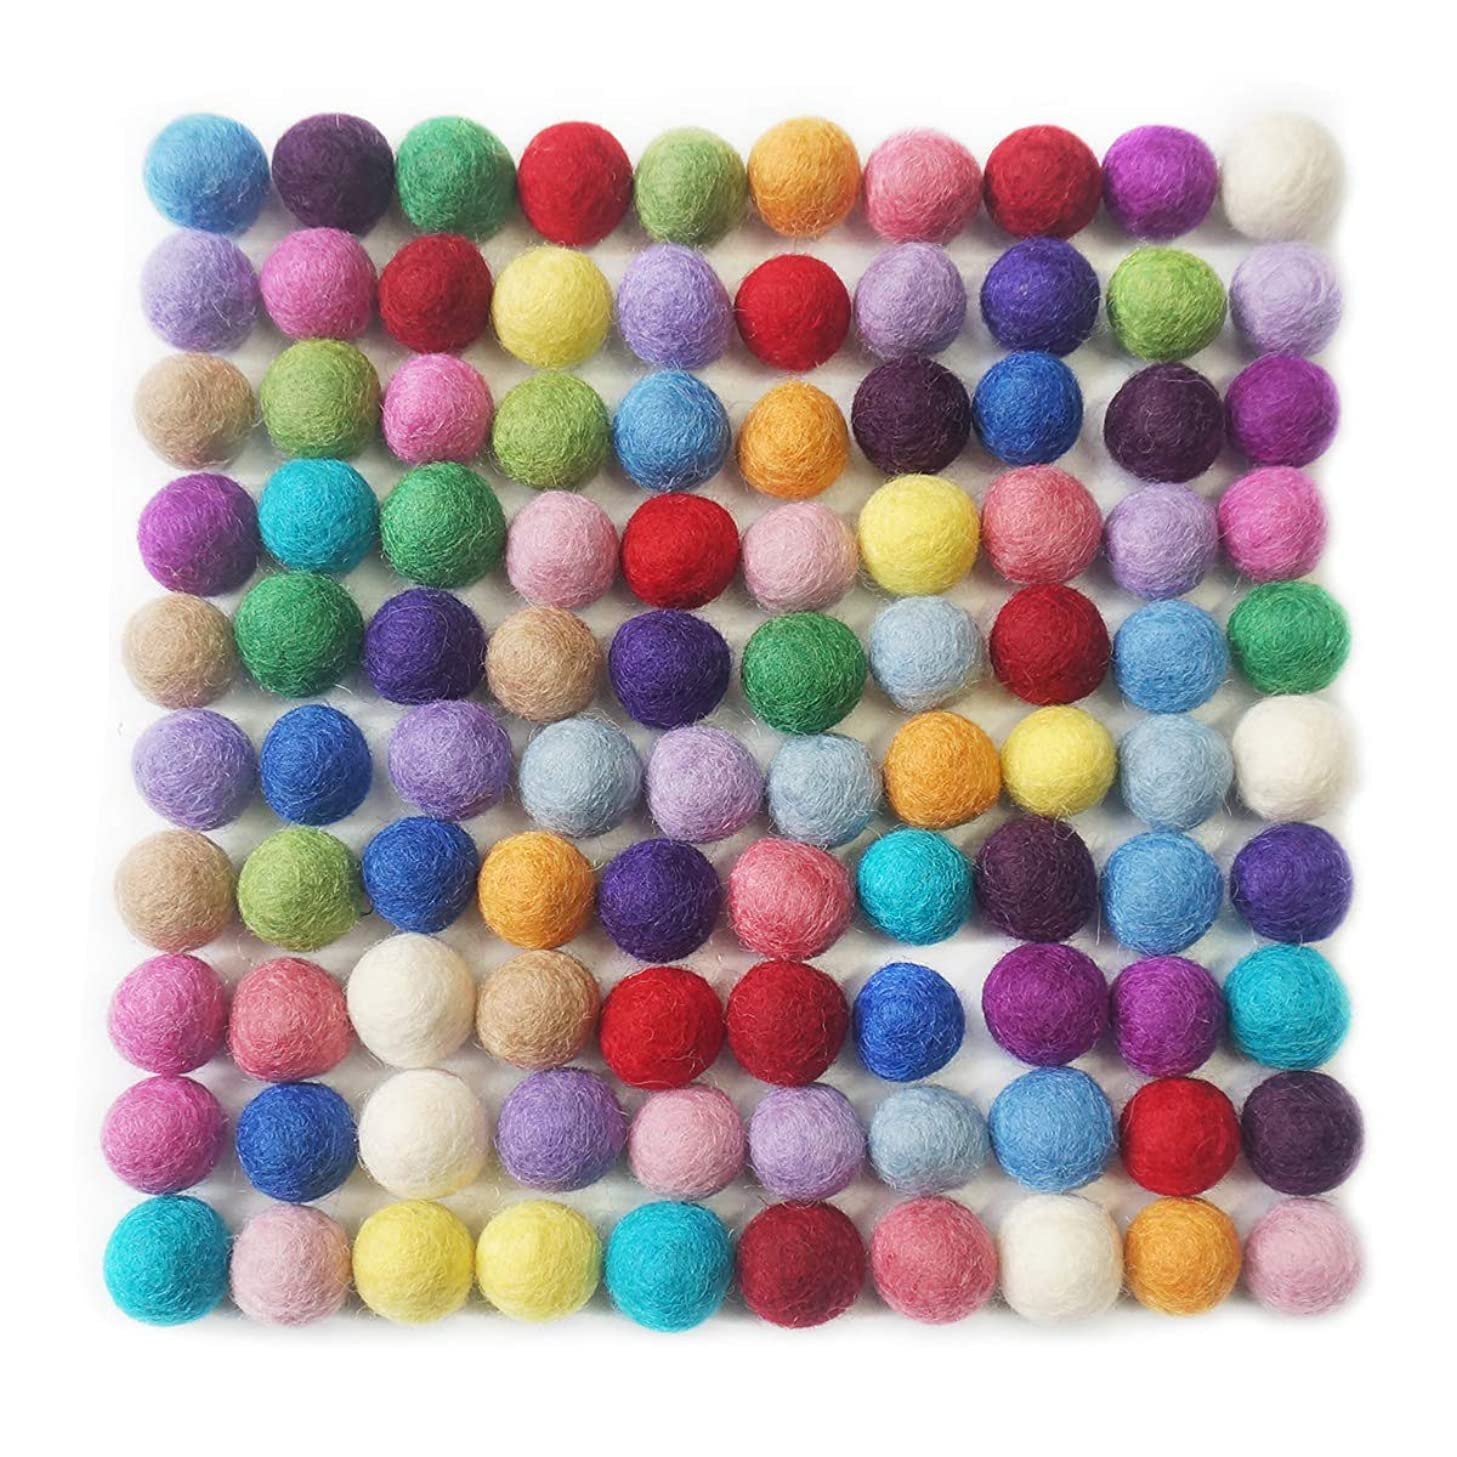 Misscrafts 100pcs 100% Wool Felt Balls Pure Wool Beads 20mm Hand-Felted Pom Poms for Party Festivals Room Decorations